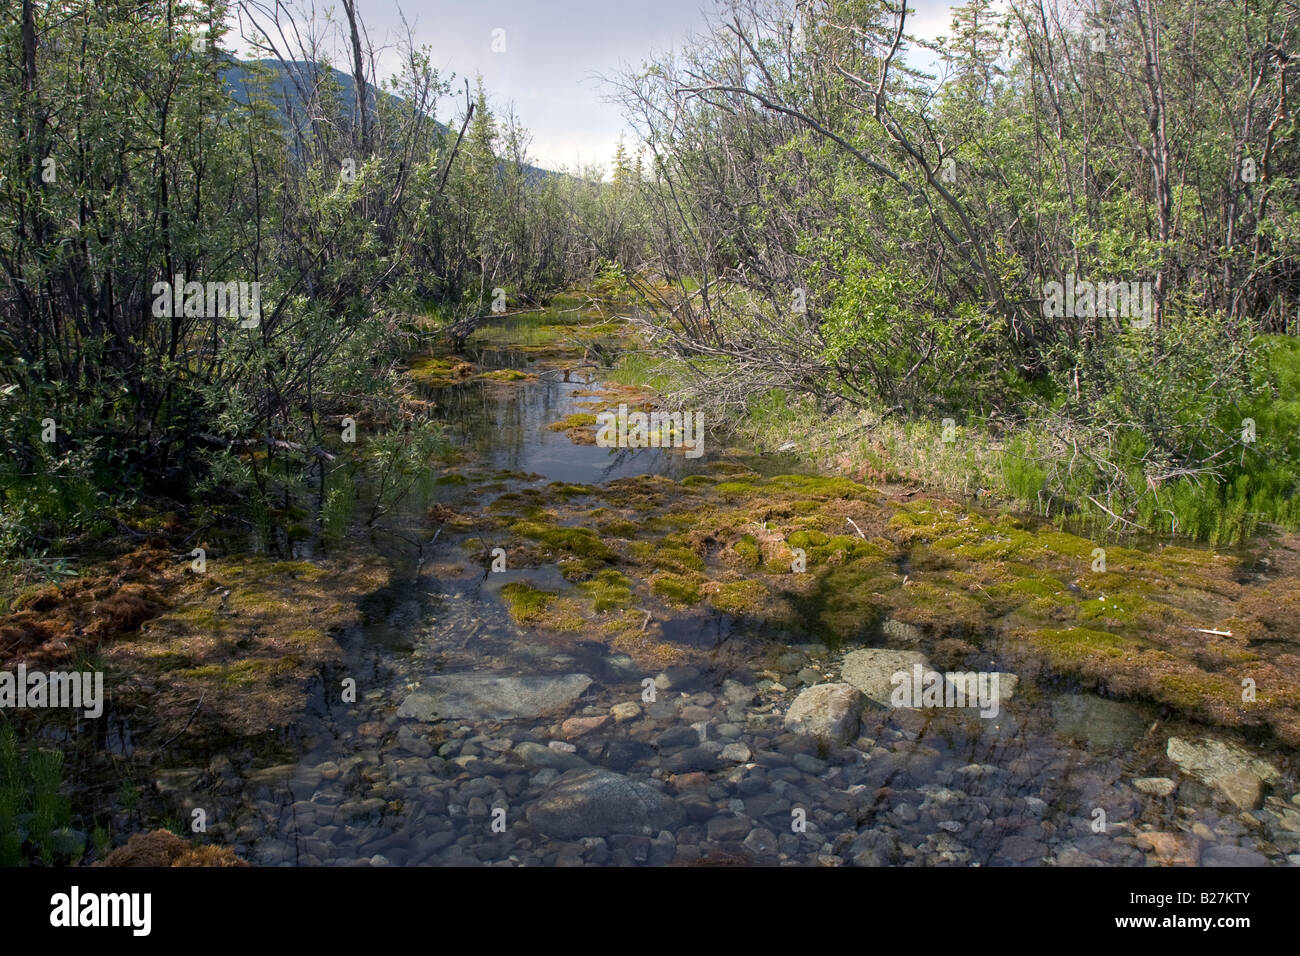 River bed in McCarthy, Alaska. - Stock Image